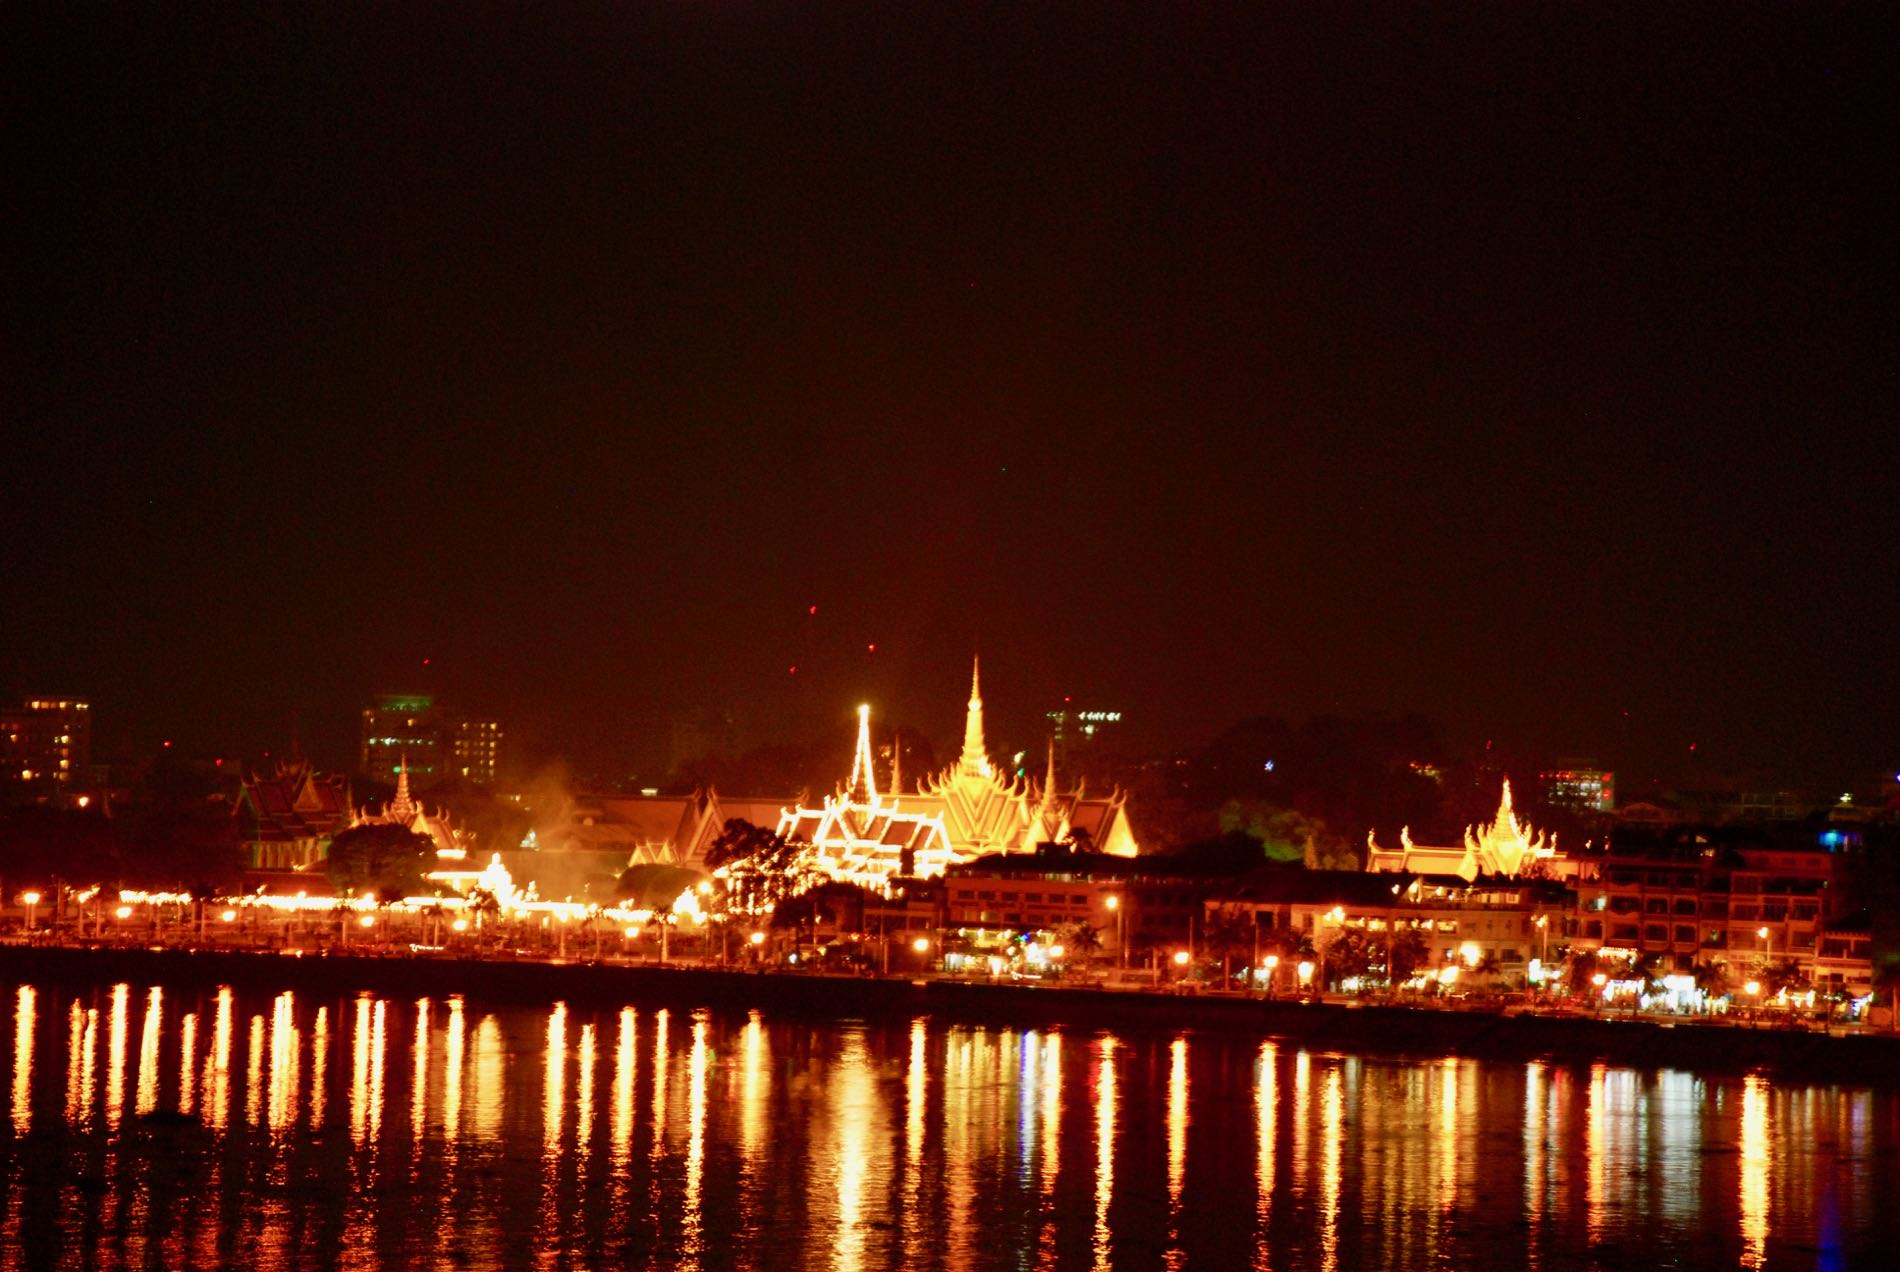 Cambodia's Royal Palace in Phnom Penh lit up for water festival